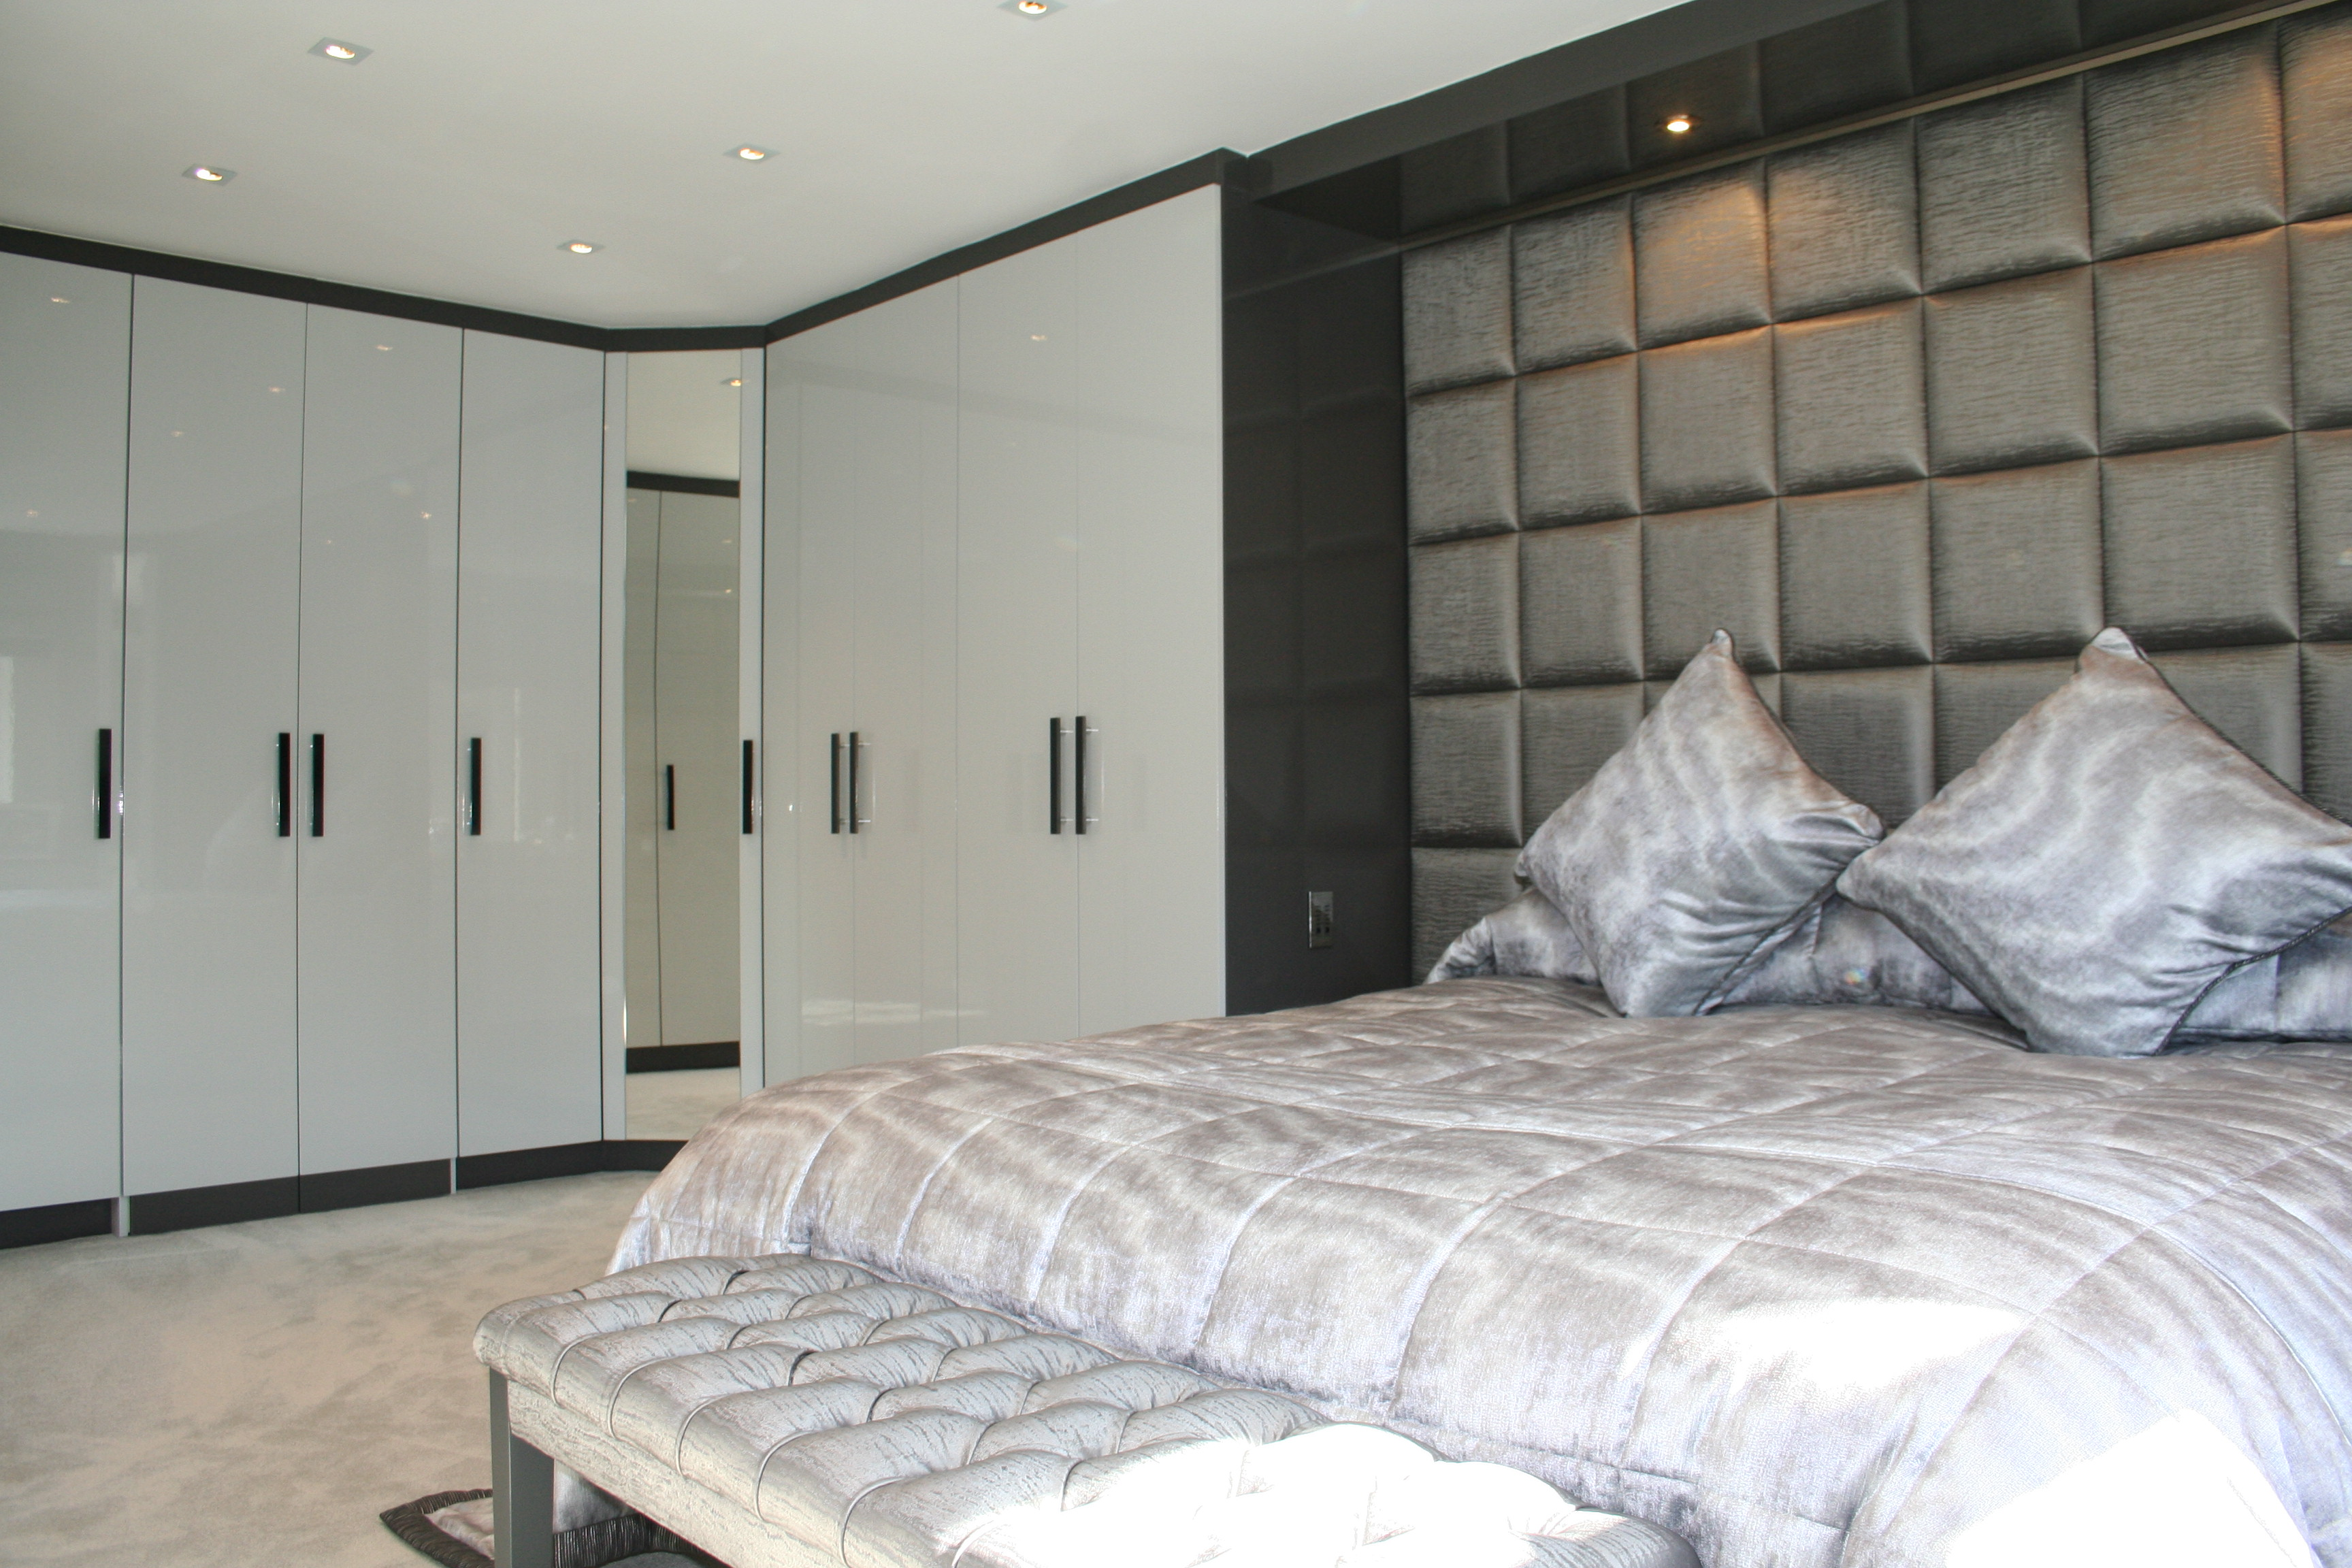 Luxury Master Bedroom High Gloss Fitted Wardobes | Complete Fitted Bedrooms complete fitted bedrooms